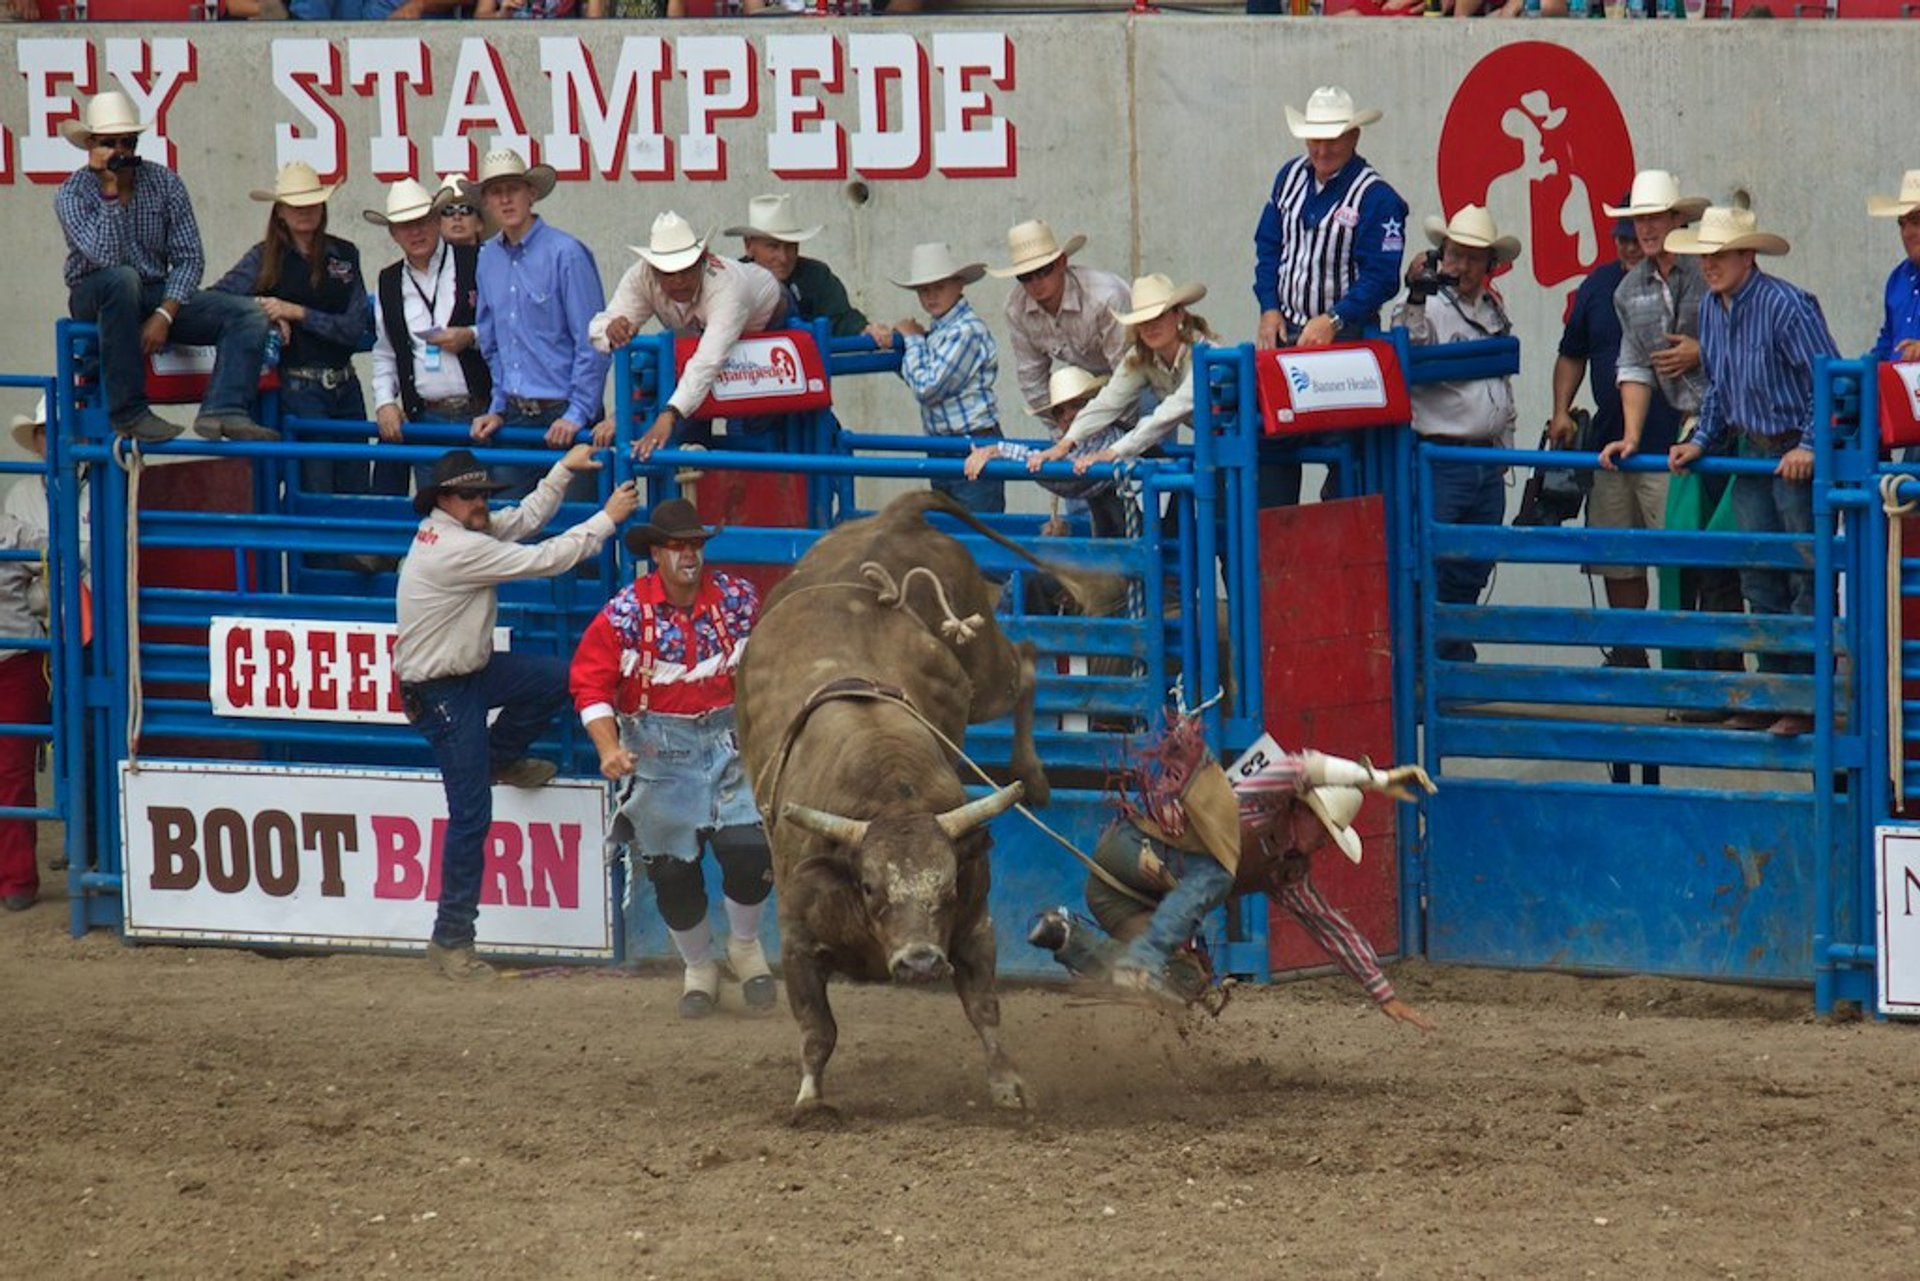 Greeley Stampede in Colorado 2020 - Best Time